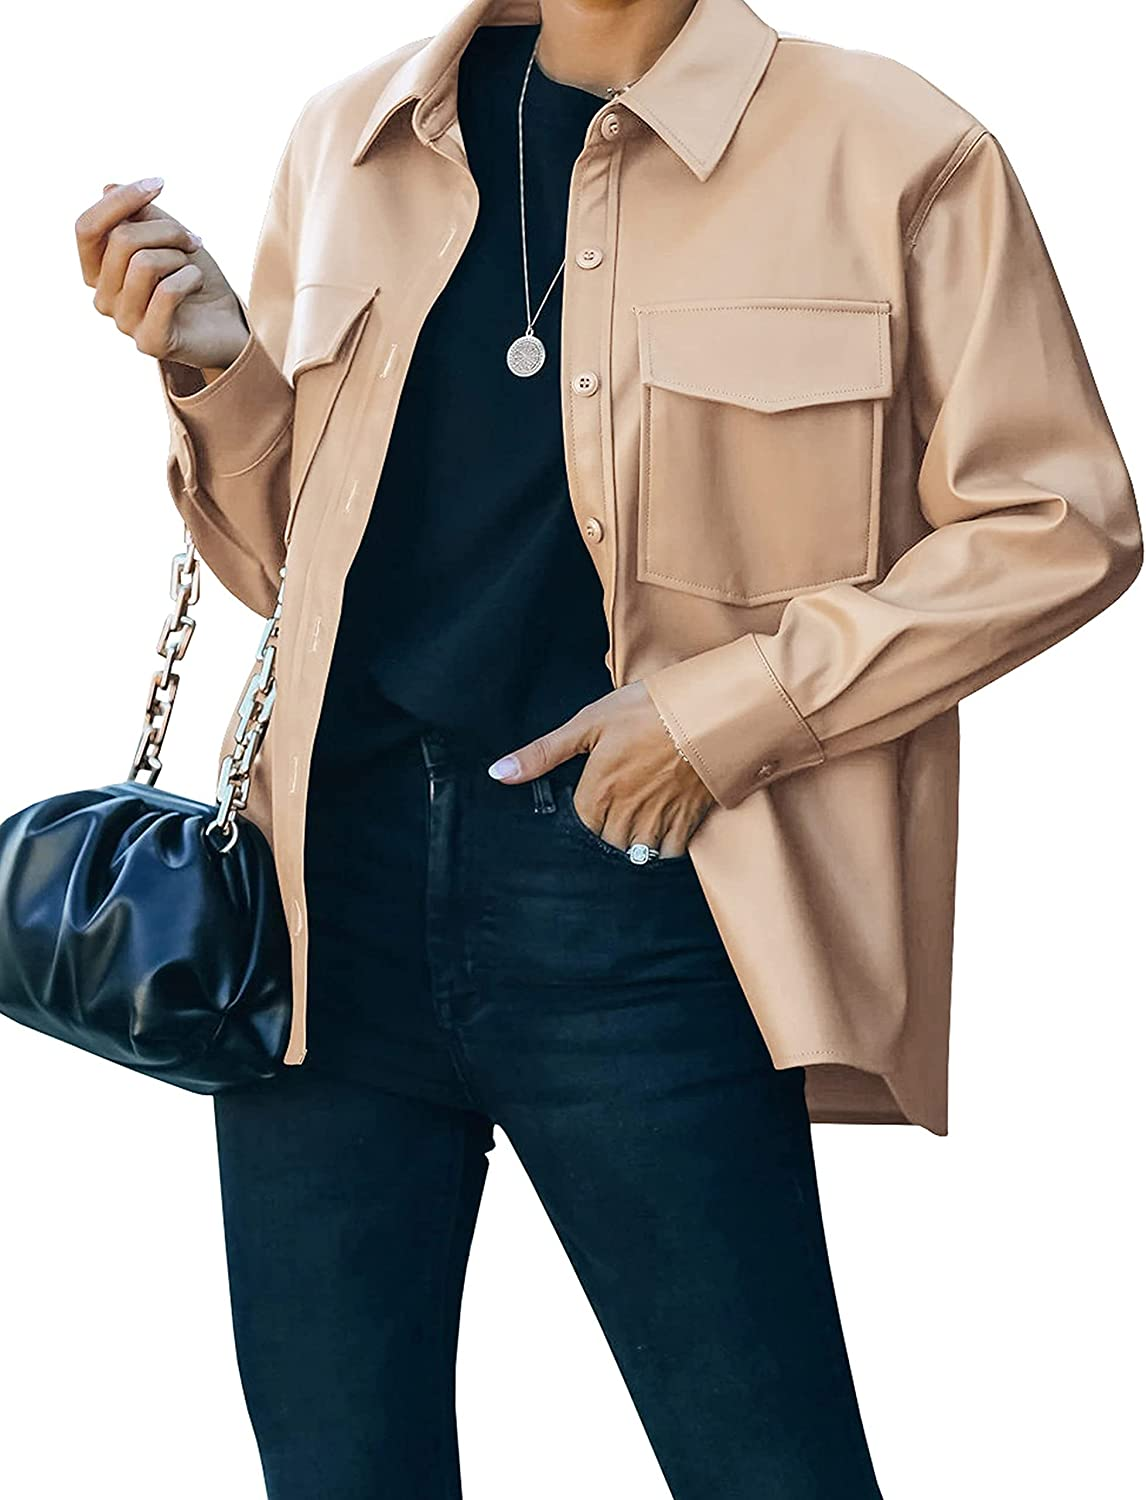 Lentta Women's Faux Leather Shacket Jacket Button Front Straight Pocketed Casual Jacket Coat